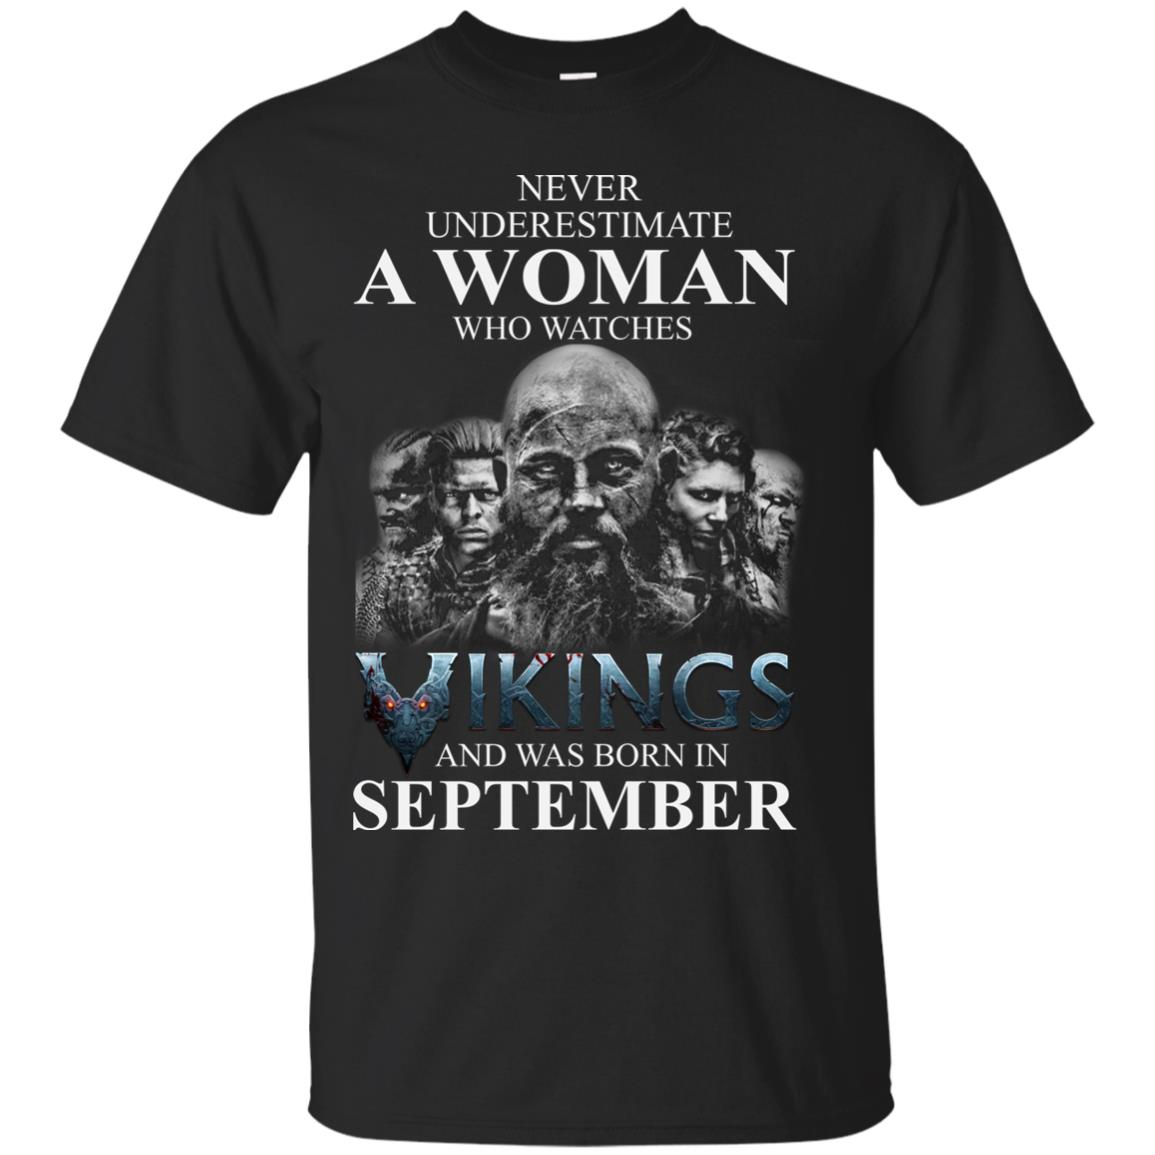 image 1255 - Never Underestimate A woman who watches Vikings and was born in September shirt